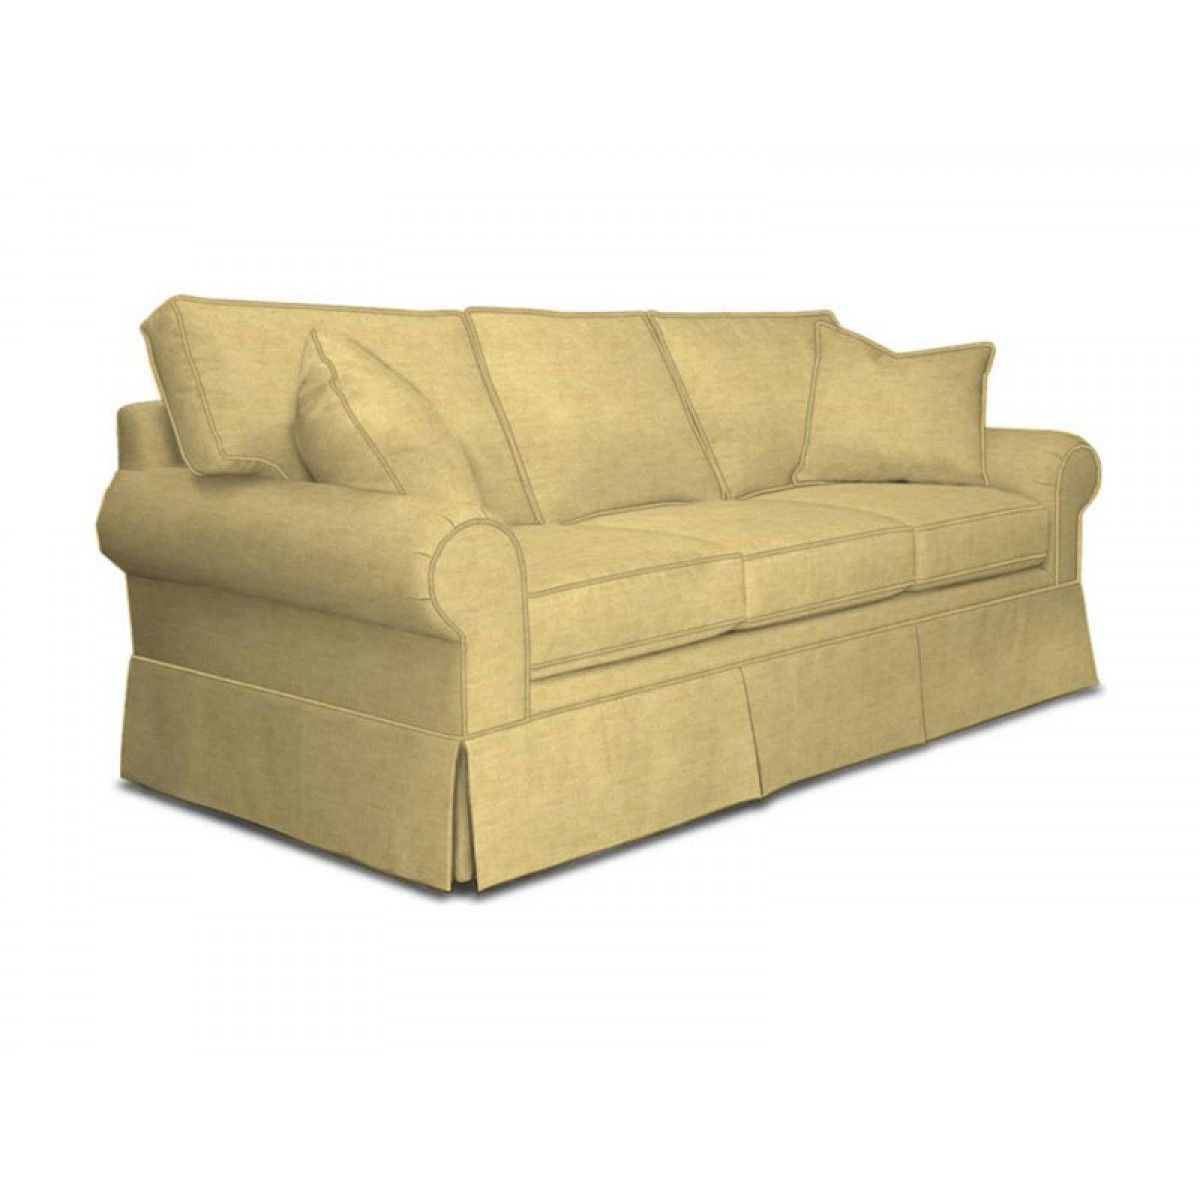 elegant drexel heritage sofa construction-Lovely Drexel Heritage sofa Plan